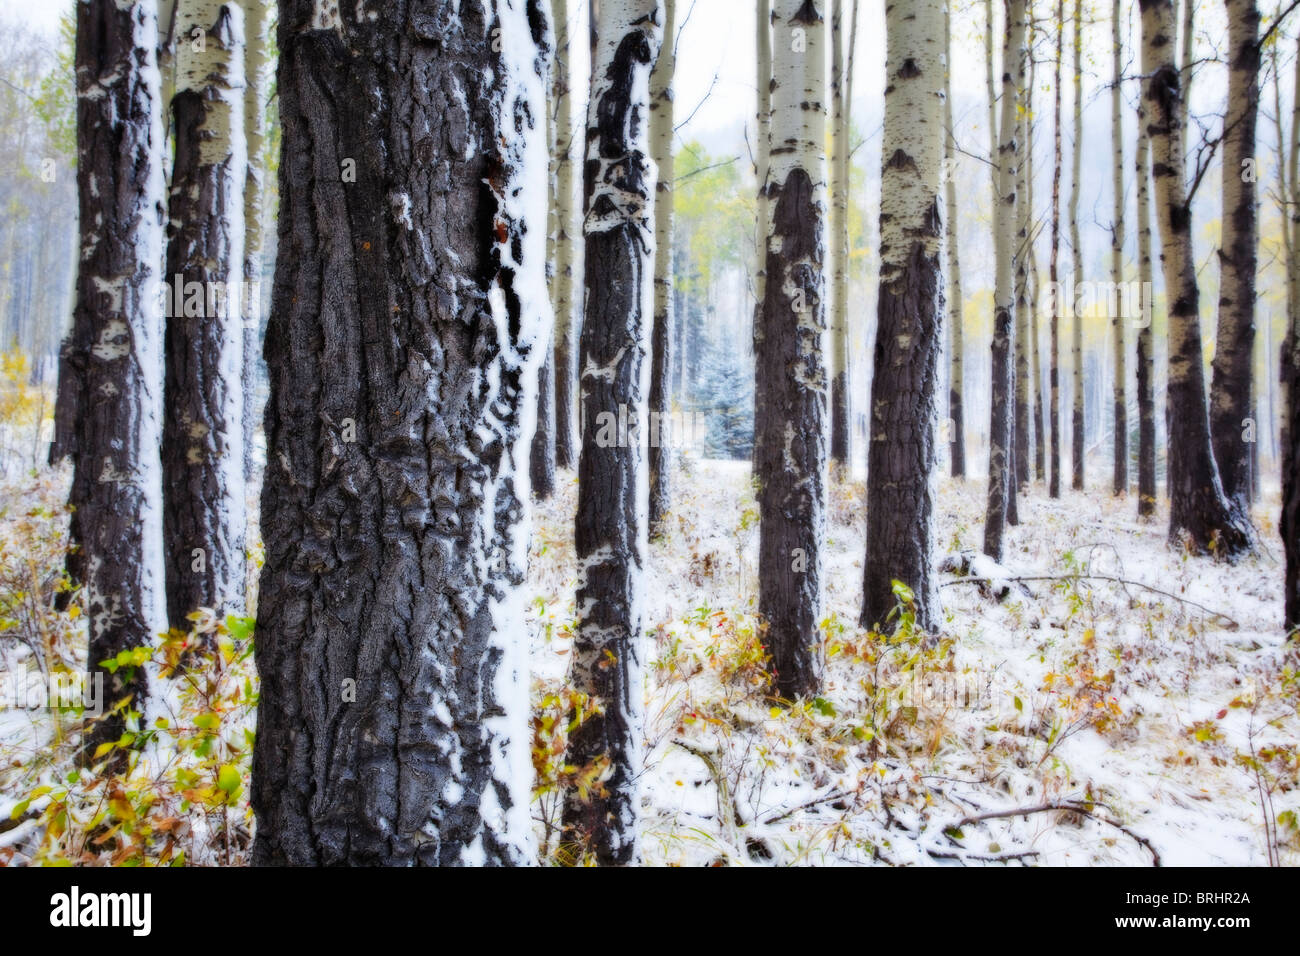 Trembling or Quaking Aspen Trees after a snowfall.  Banff National Park, Alberta, Canada. - Stock Image